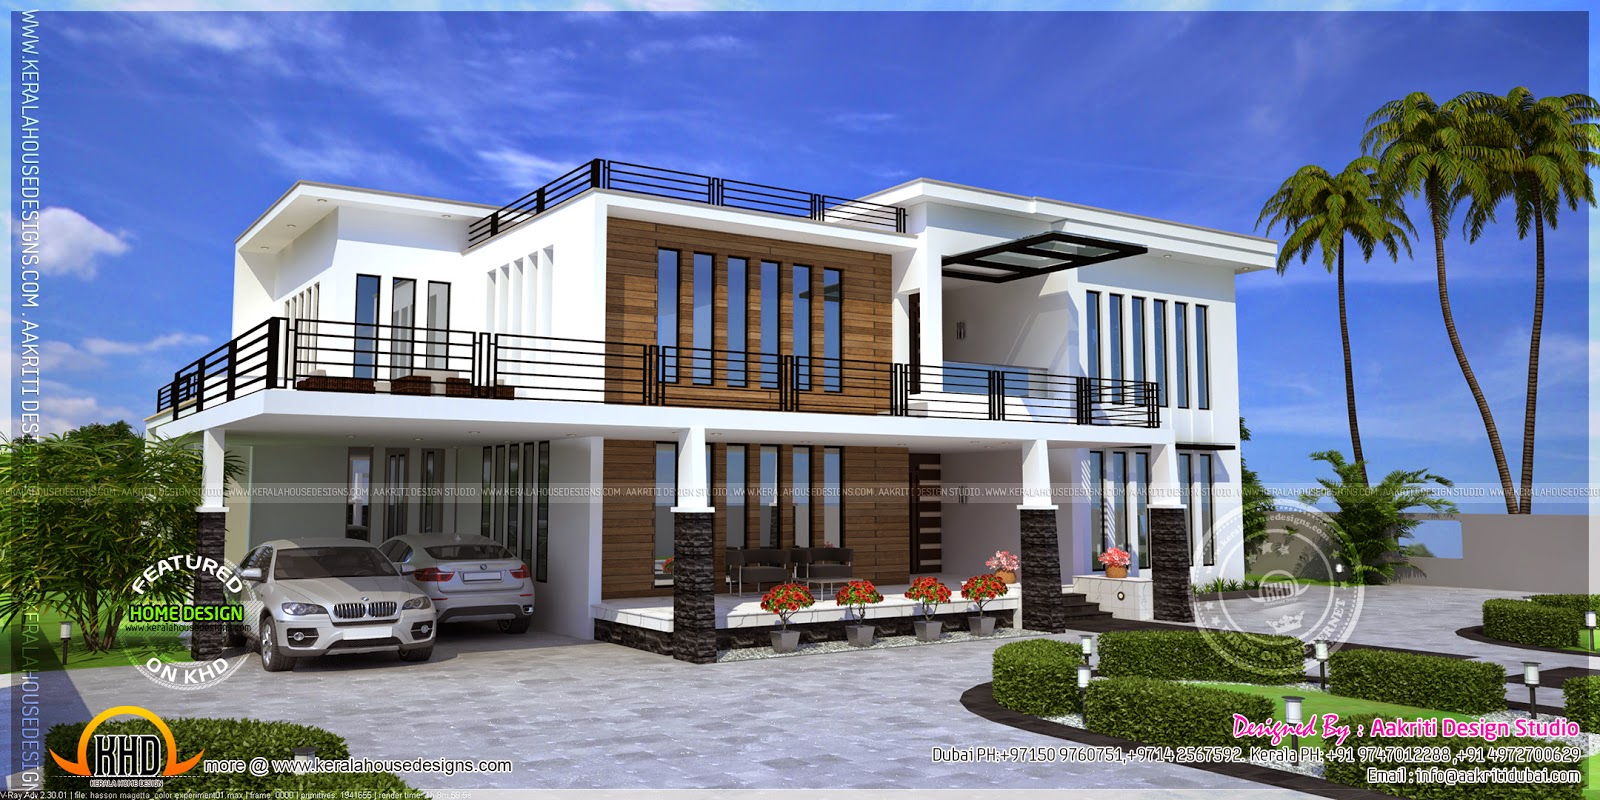 Contemporary house view kerala home design and floor plans for House plans for homes with a view